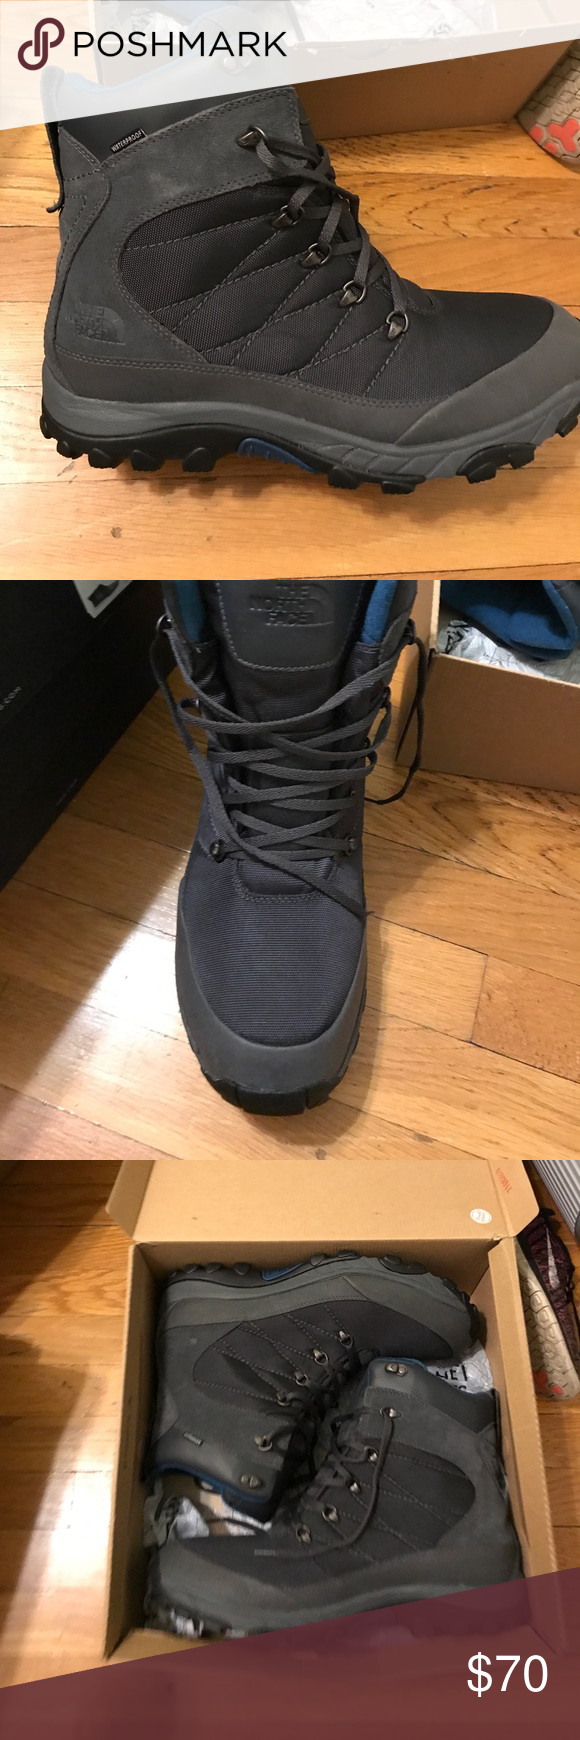 deea3cfe1 The North Face Men's Chilkat Nylon Boots New with box. The North ...